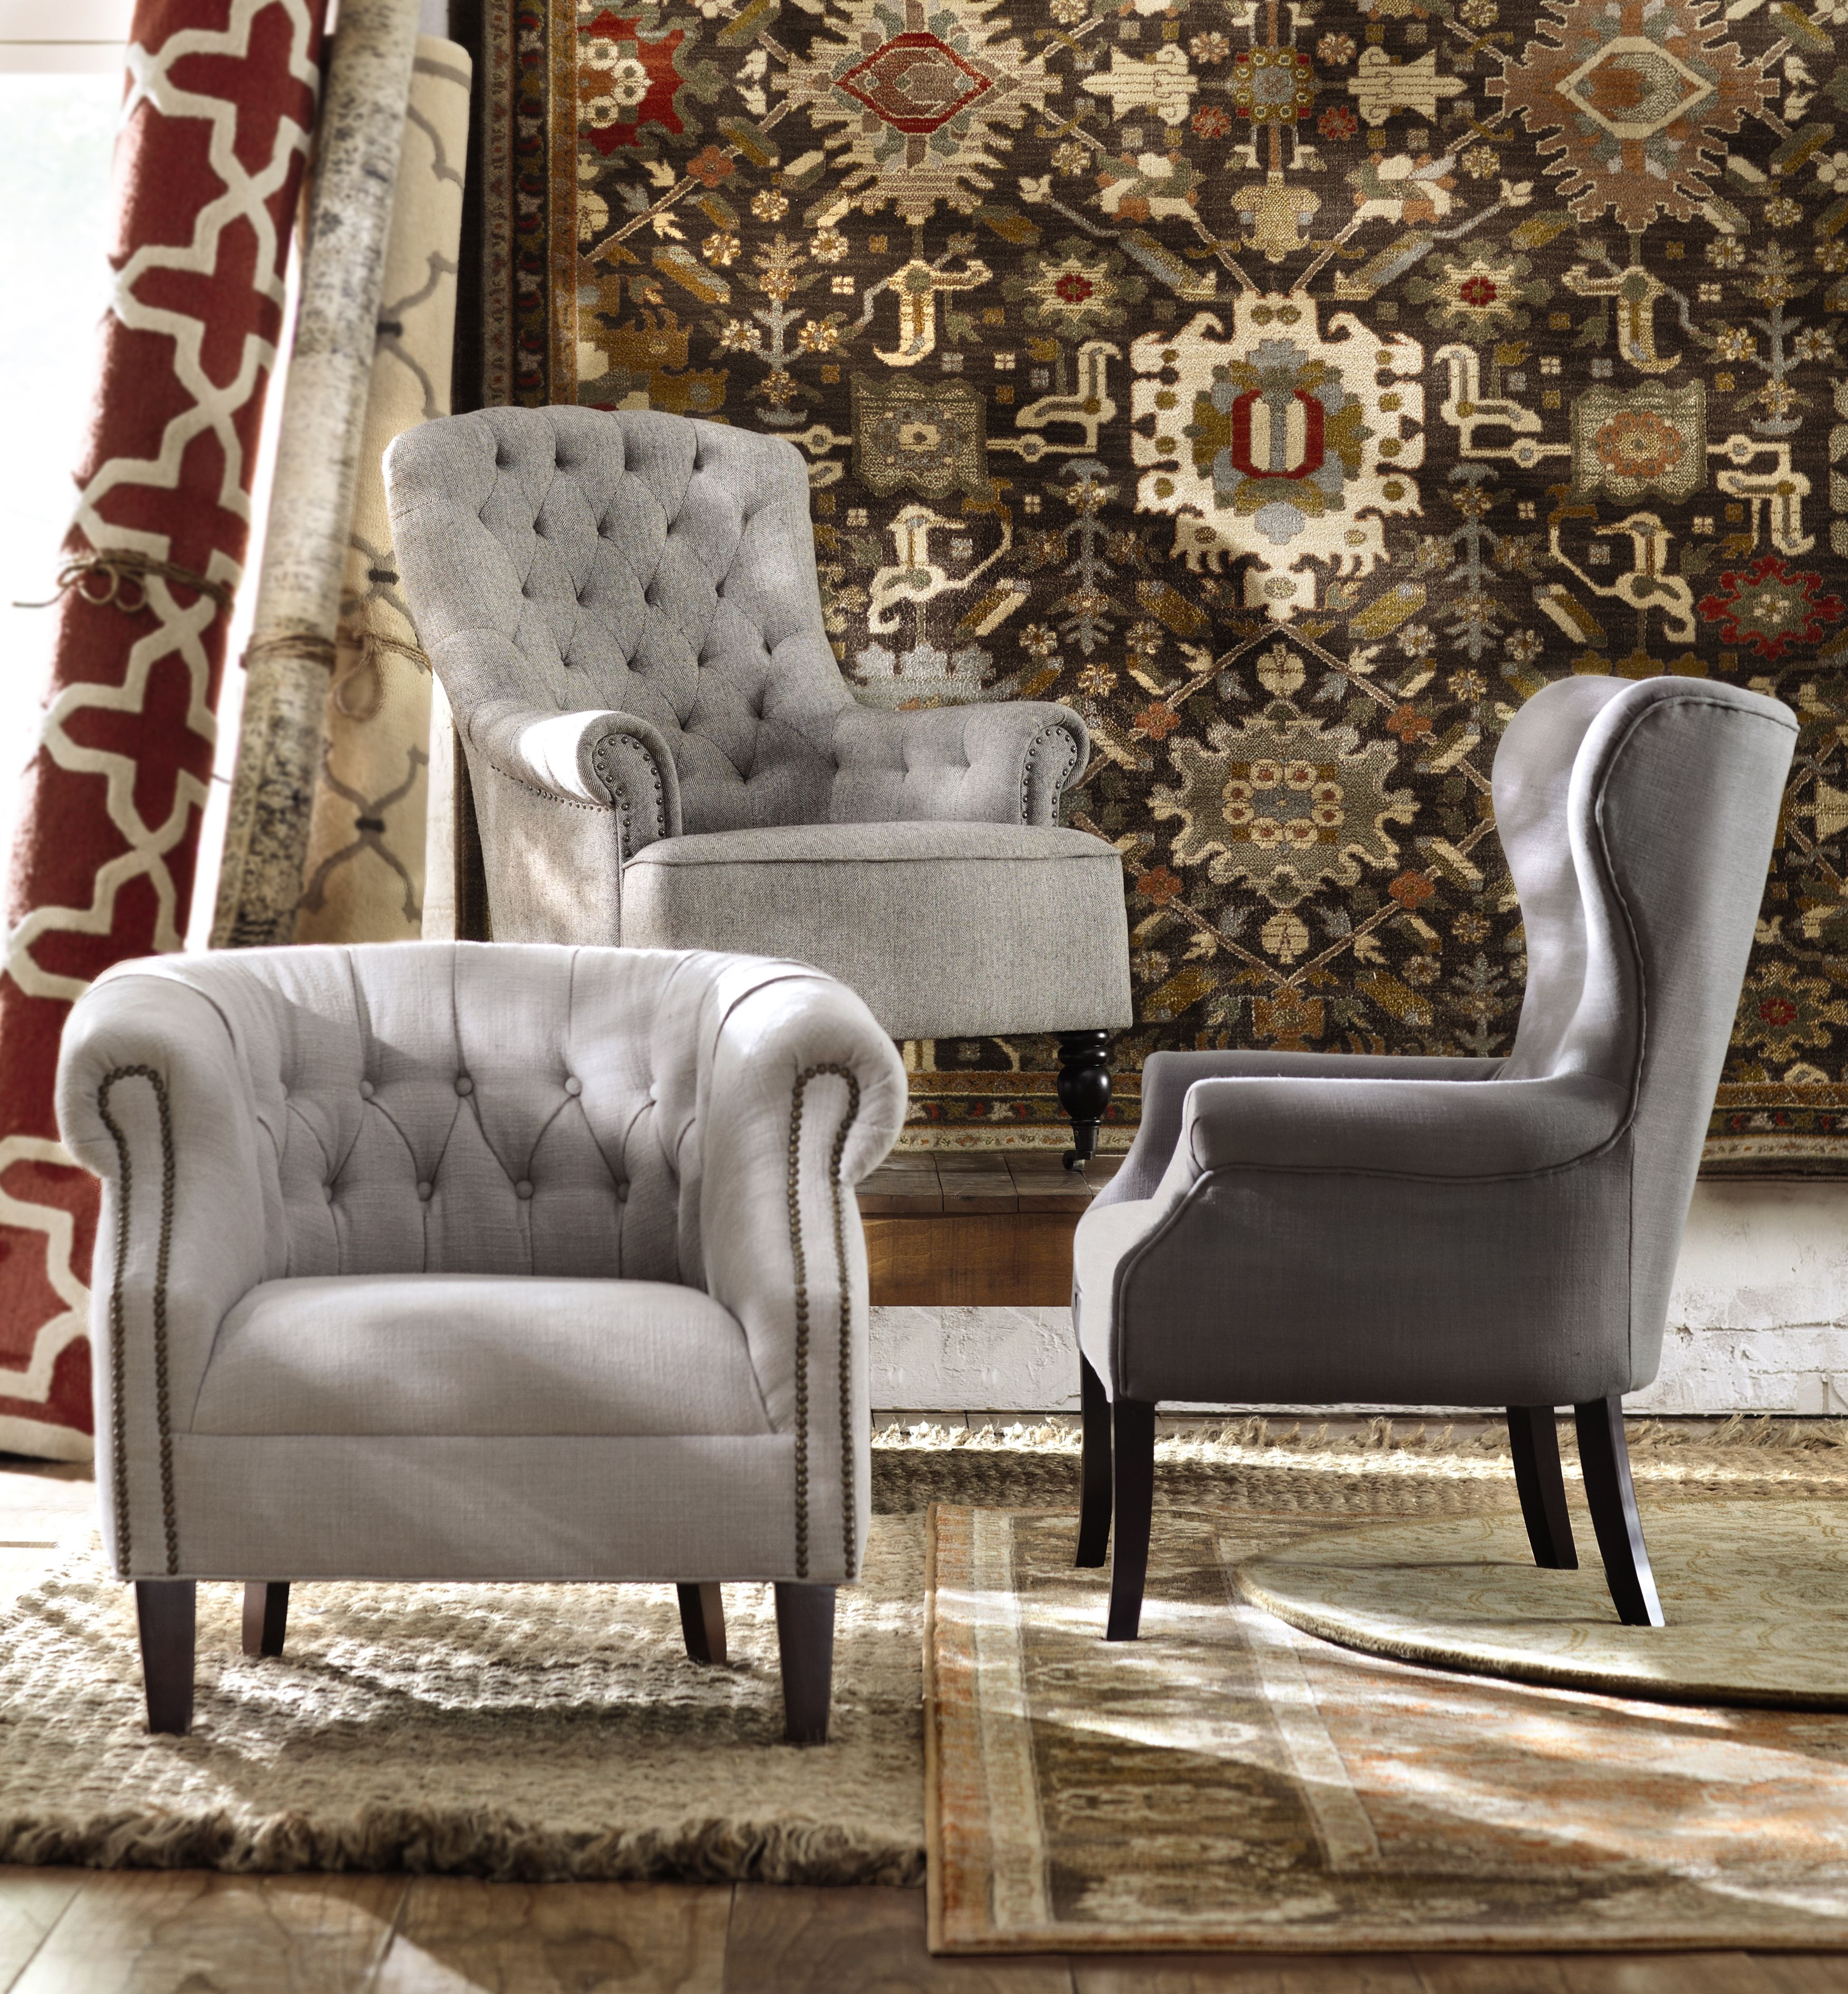 The Perfect Sofa Accent Is A Beautiful Upholstered Chair